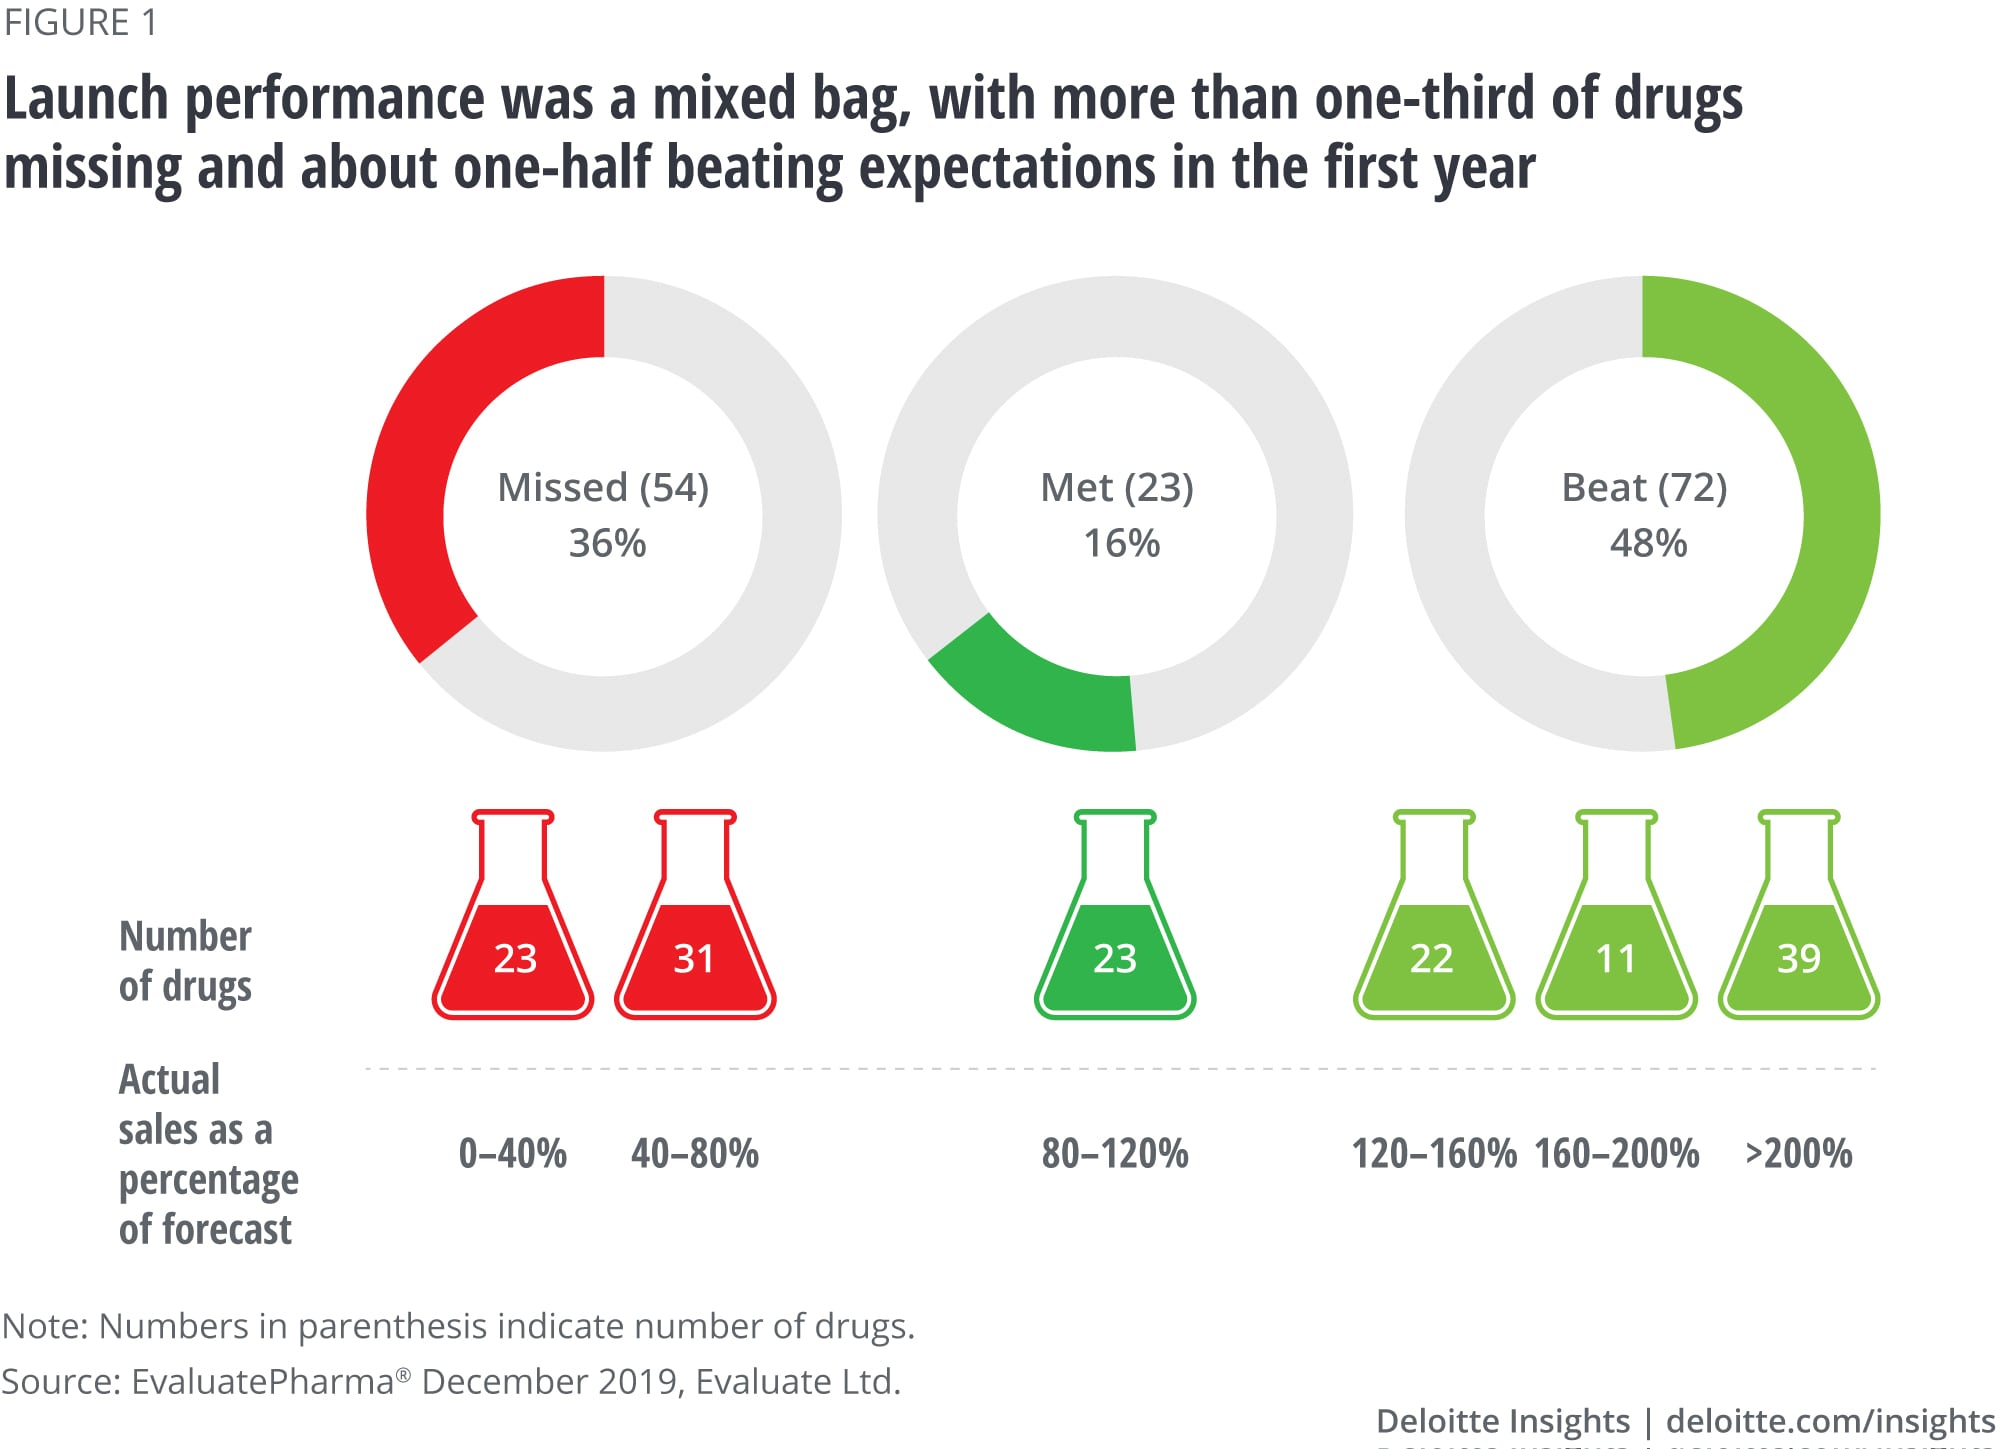 Launch performance was a mixed bag, with more than a third of drugs missing and about half beating expectations in the first year